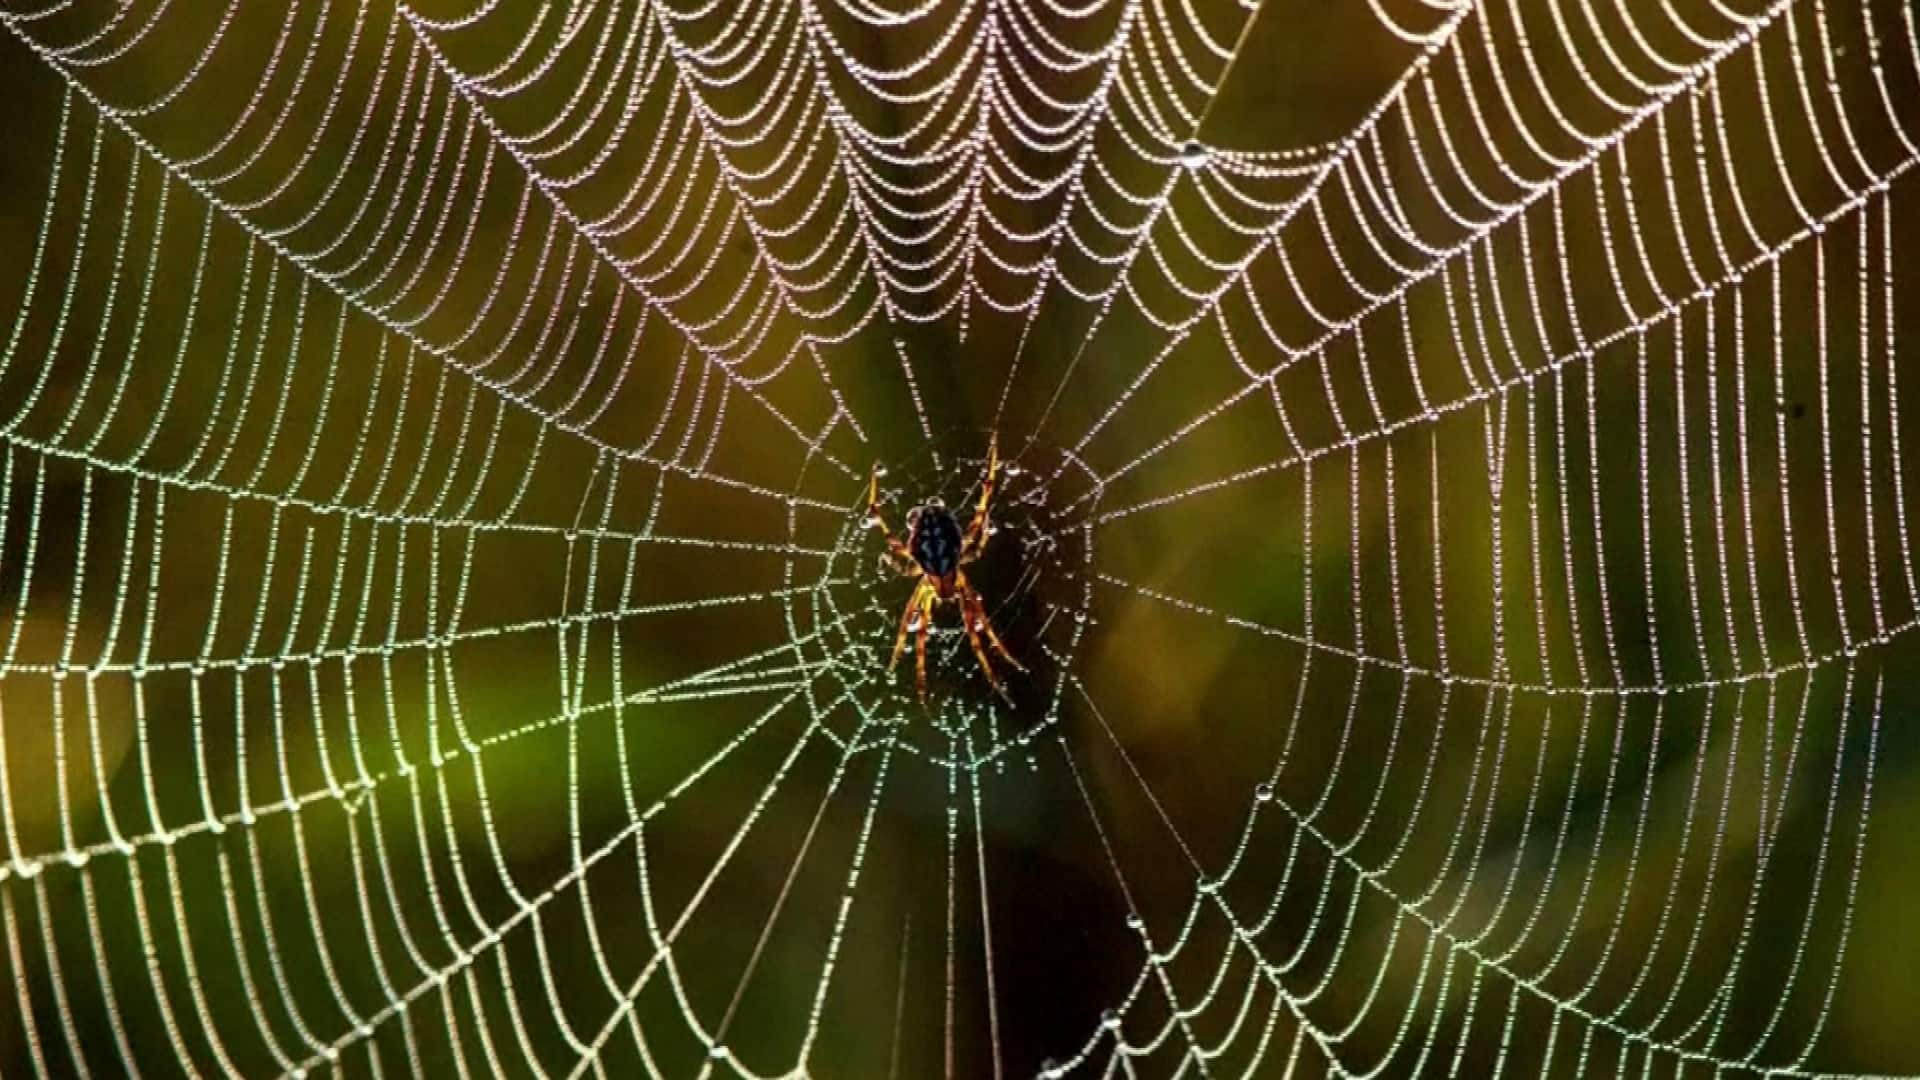 MIT researchers turn spider webs into musical forms